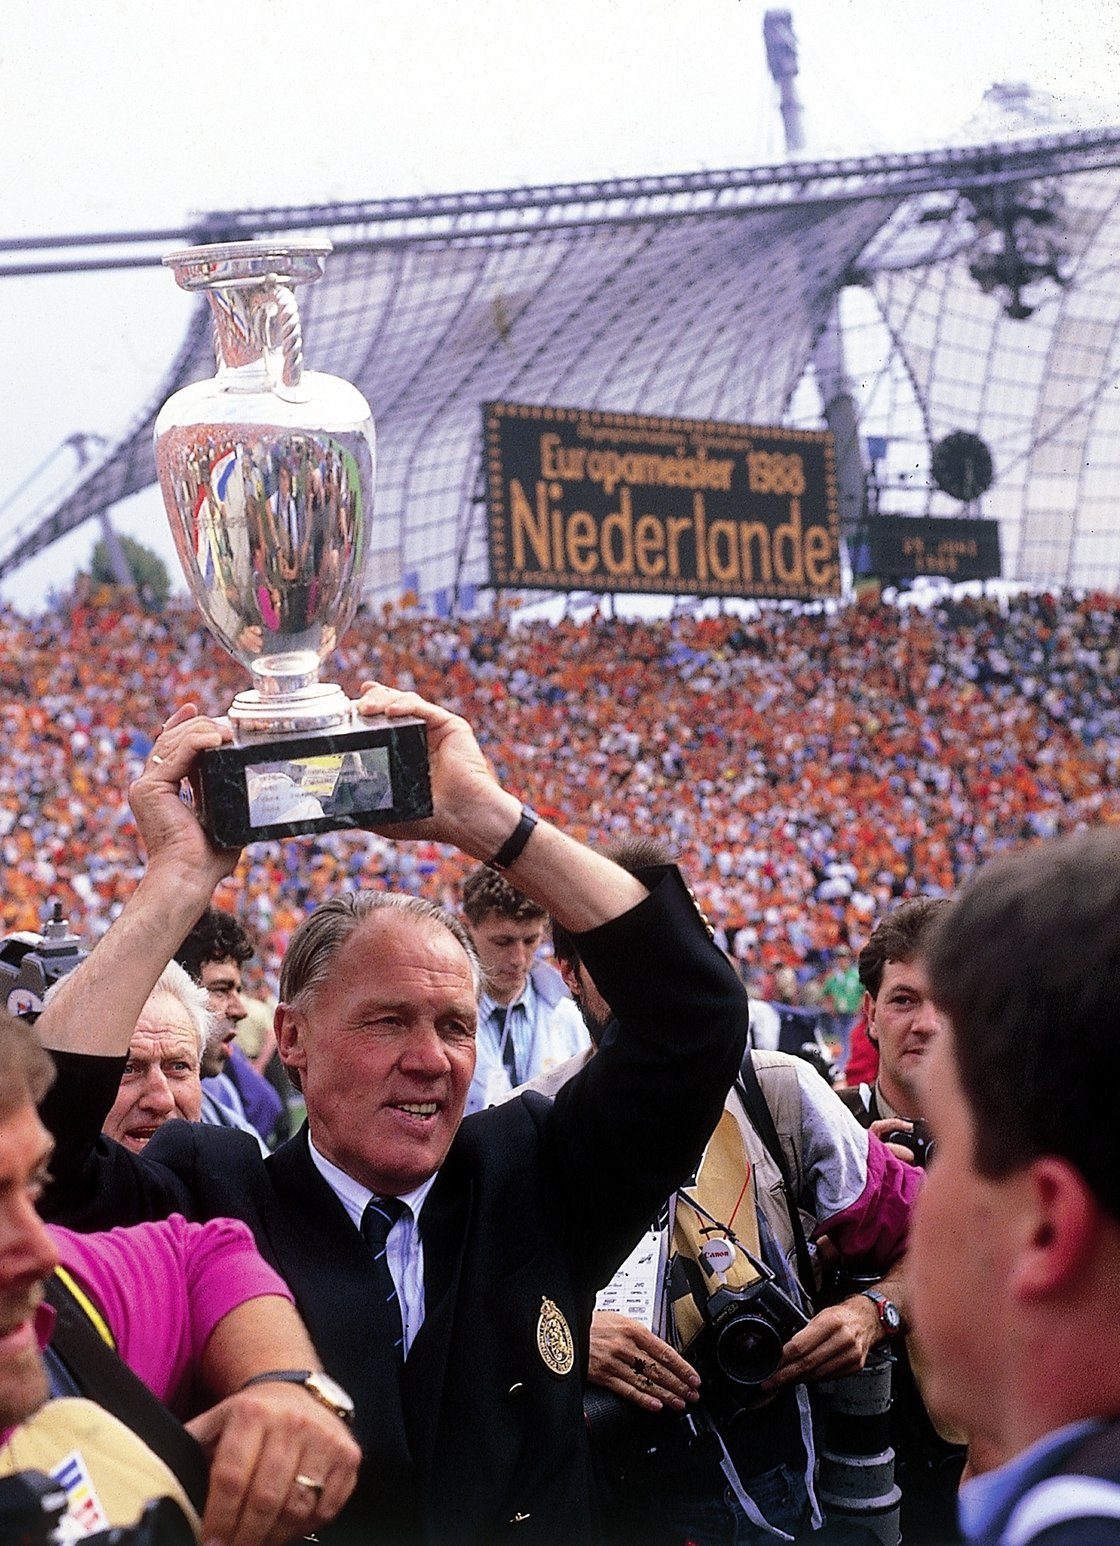 Image - Rinus Michels with the Euro 88 trophy in Munich where he had lost a World Cup final in 1974 also as manager